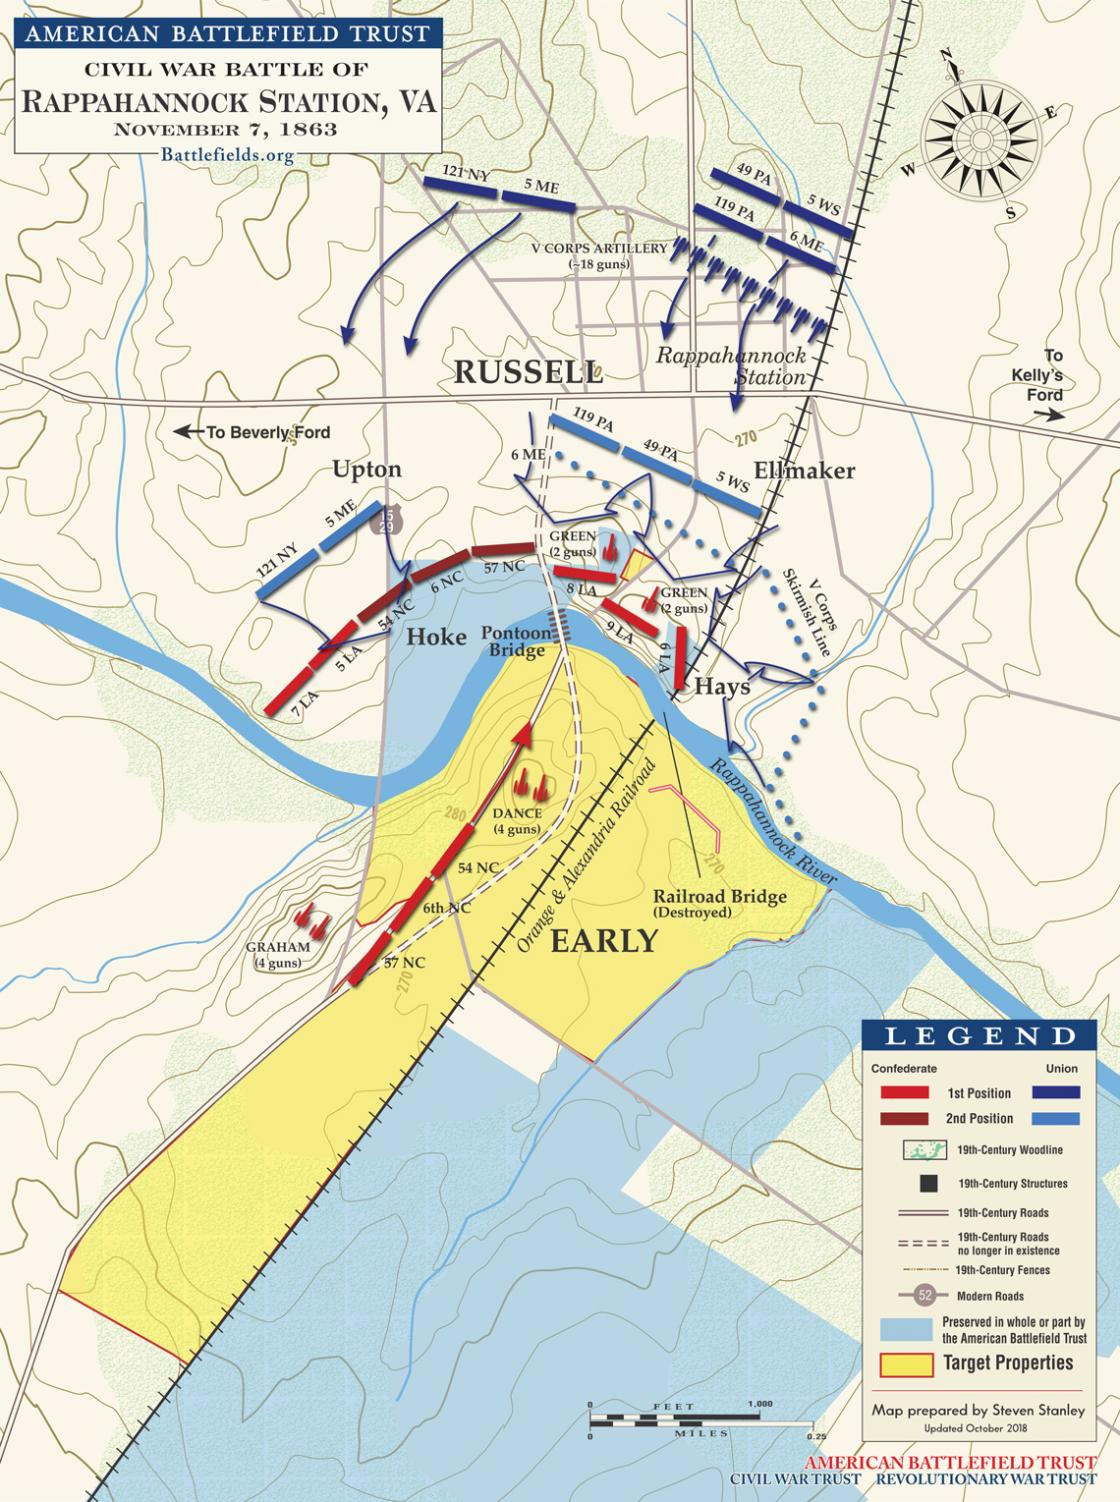 The Battle of Rappahannock Station - November 7, 1863